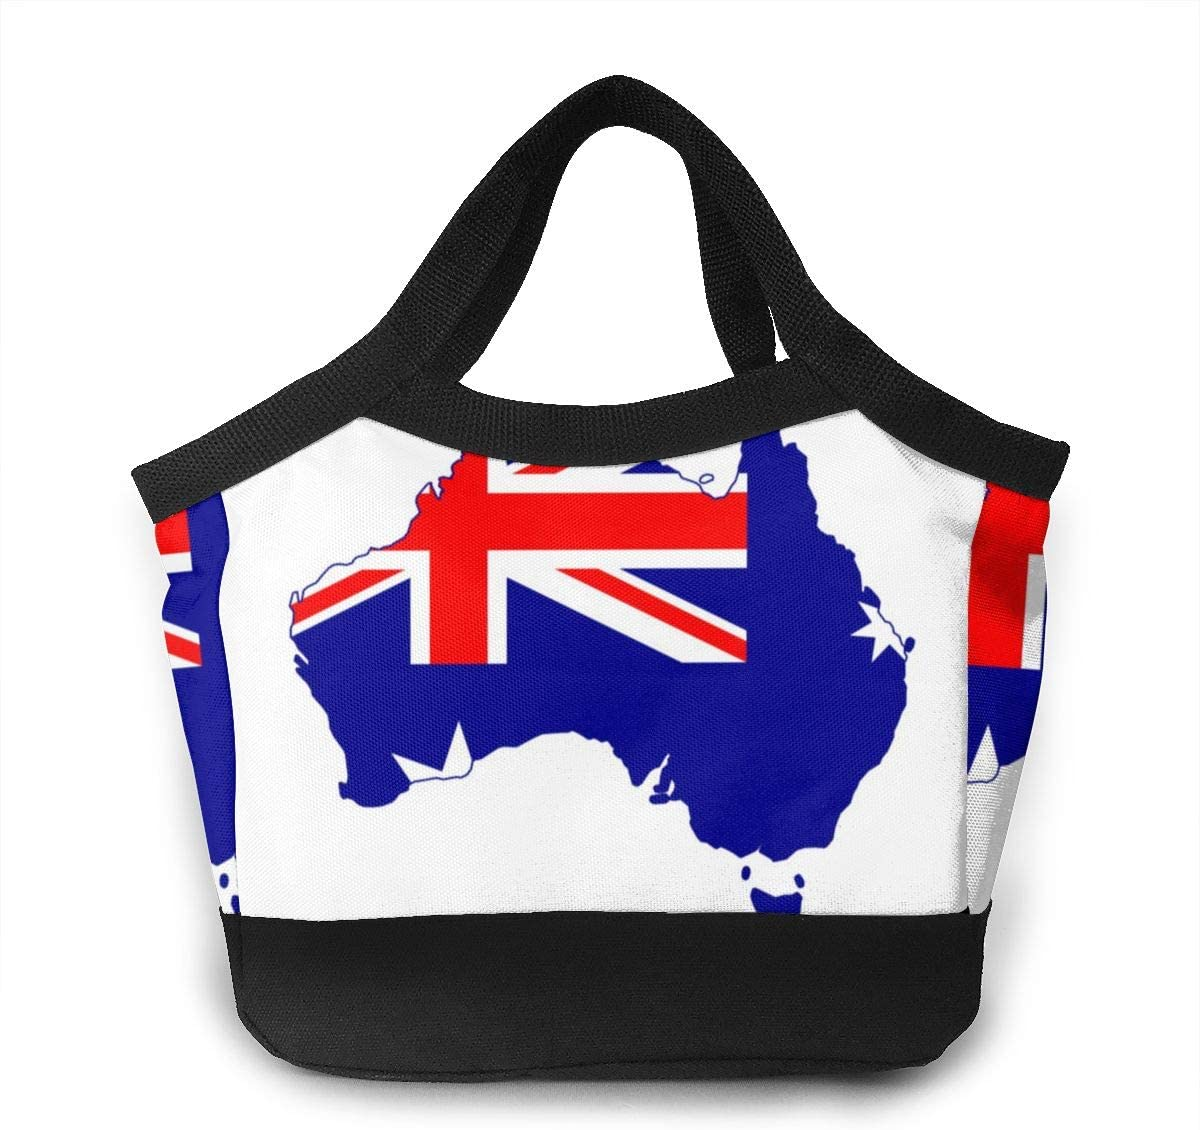 Large Lunch Bag For Women Customized Australian Flag Fabulous Water-resistant Cooler Lunch Tote Box Food Insulated Bags For Work/Office/Beach Fishing/Picnic